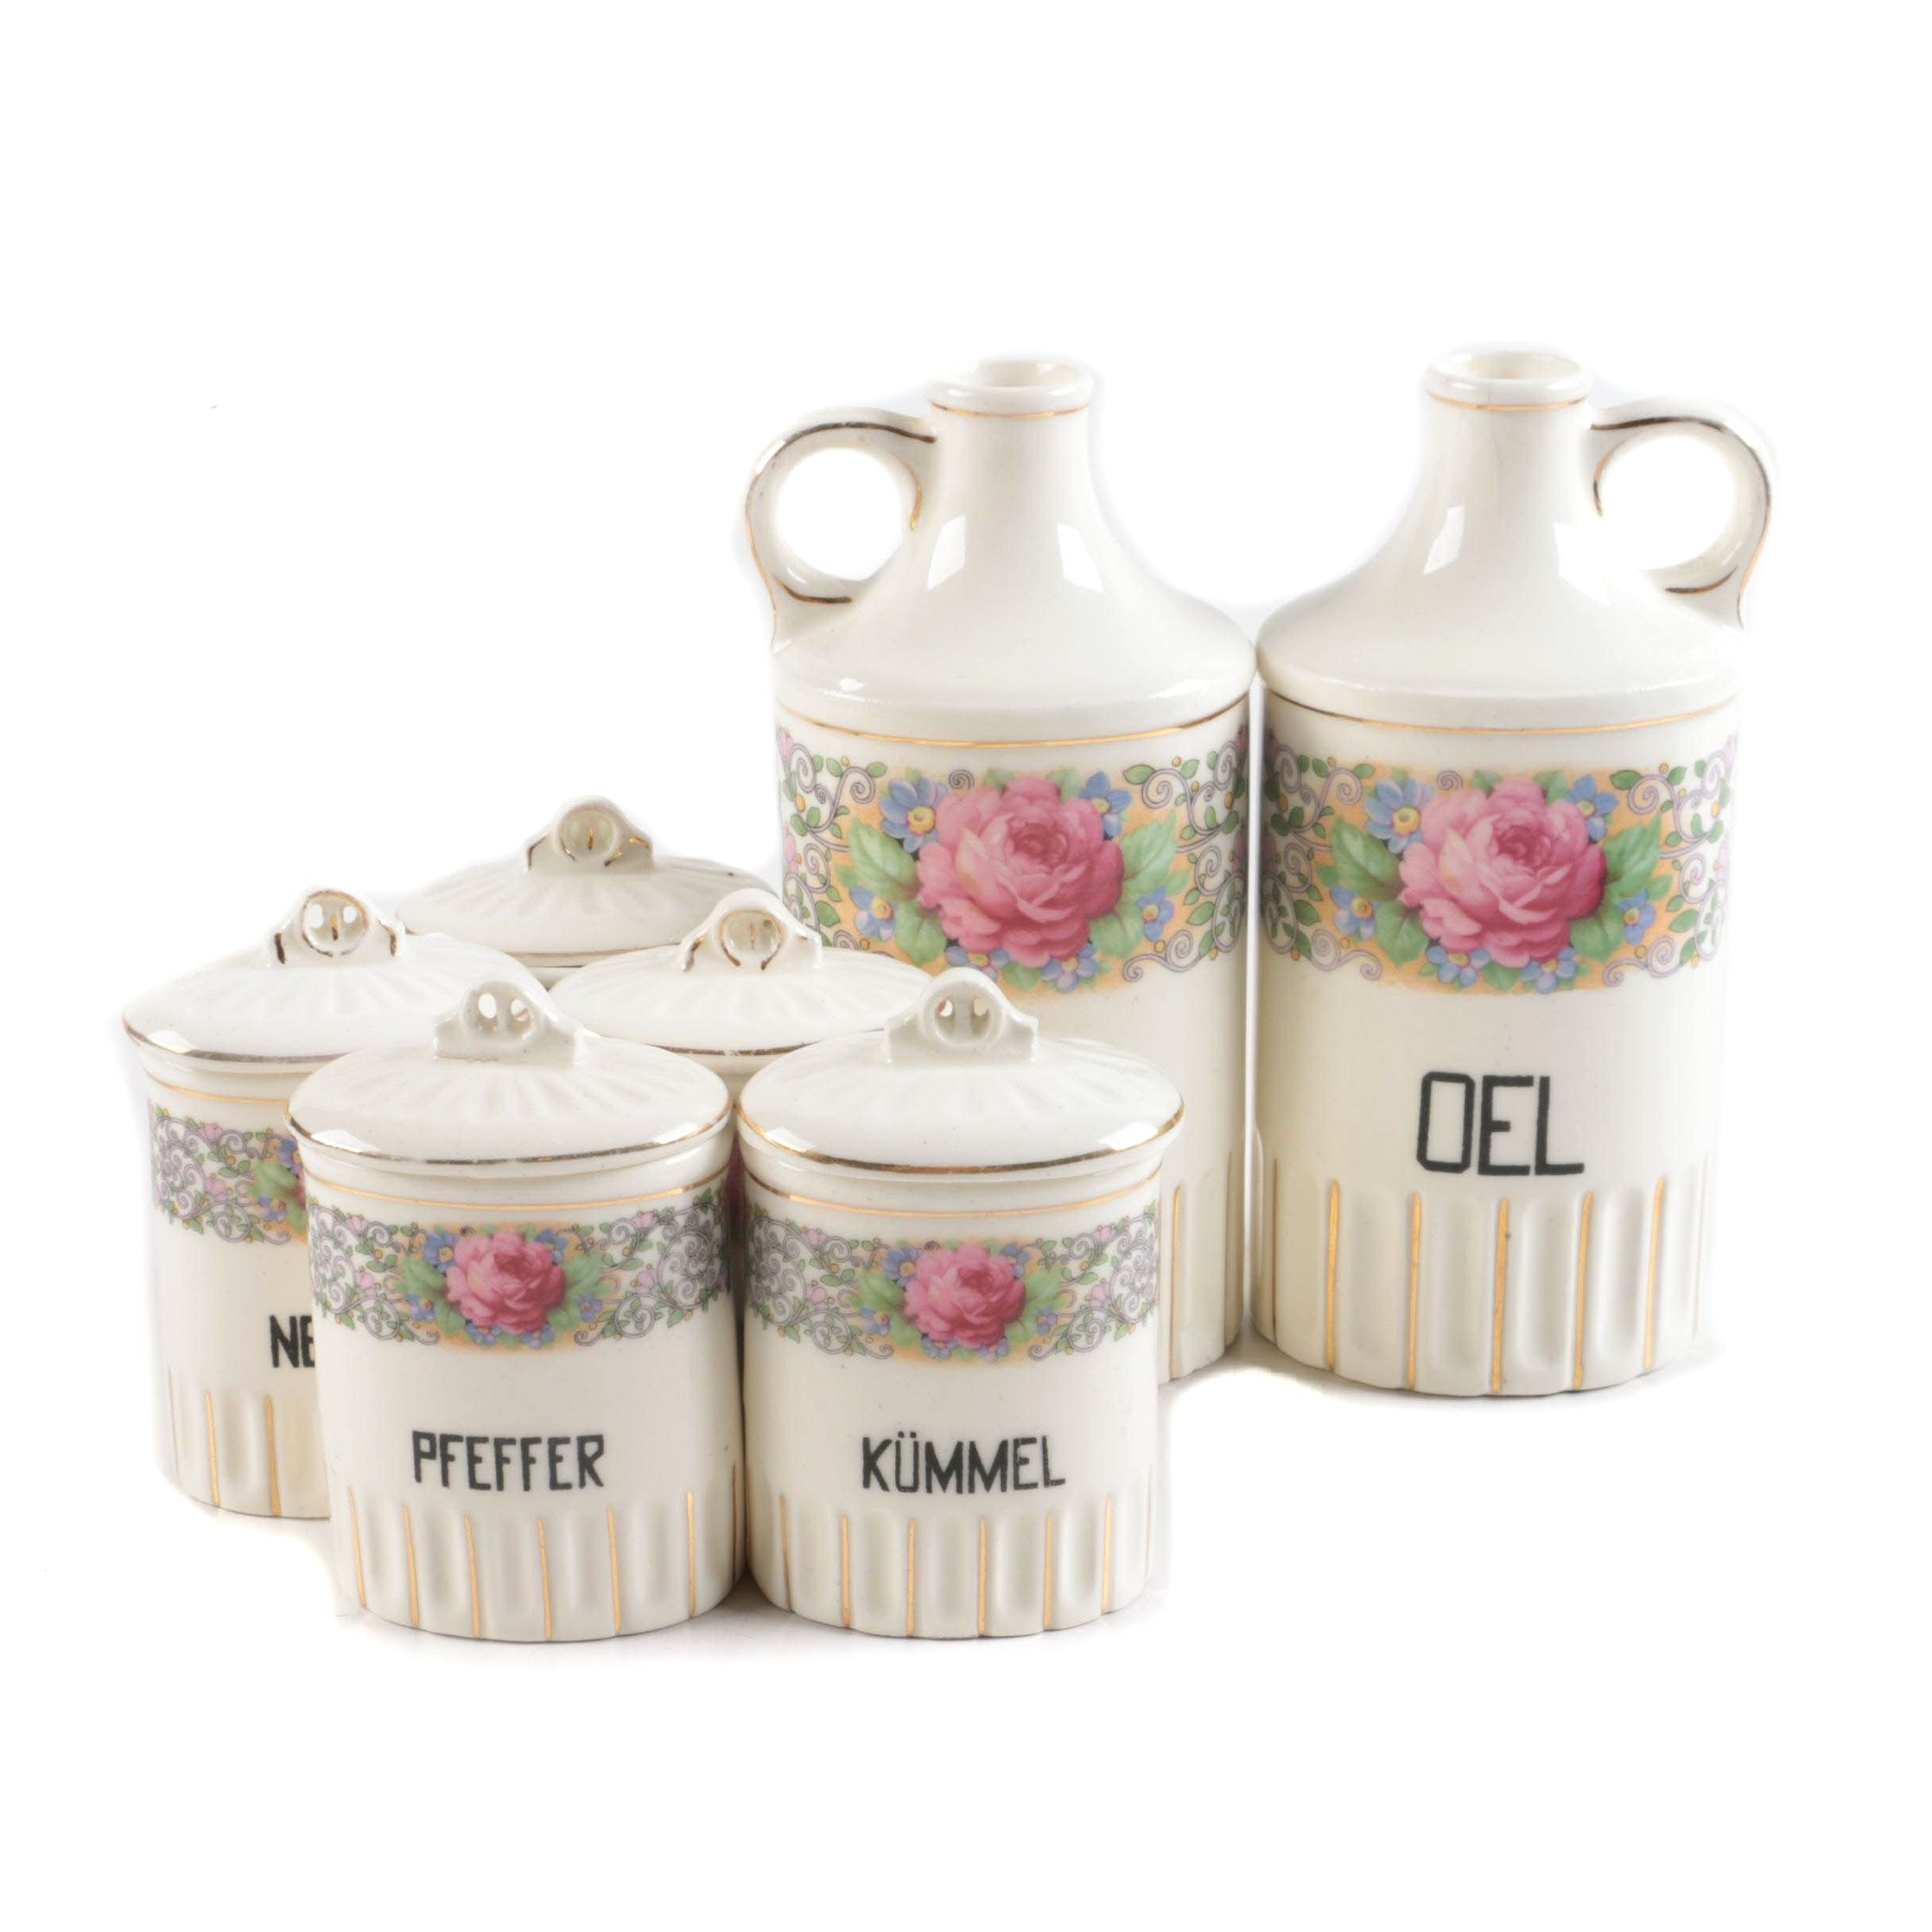 Ceramic Vinegar and Oil Cruets and Spice Containers With German Labels